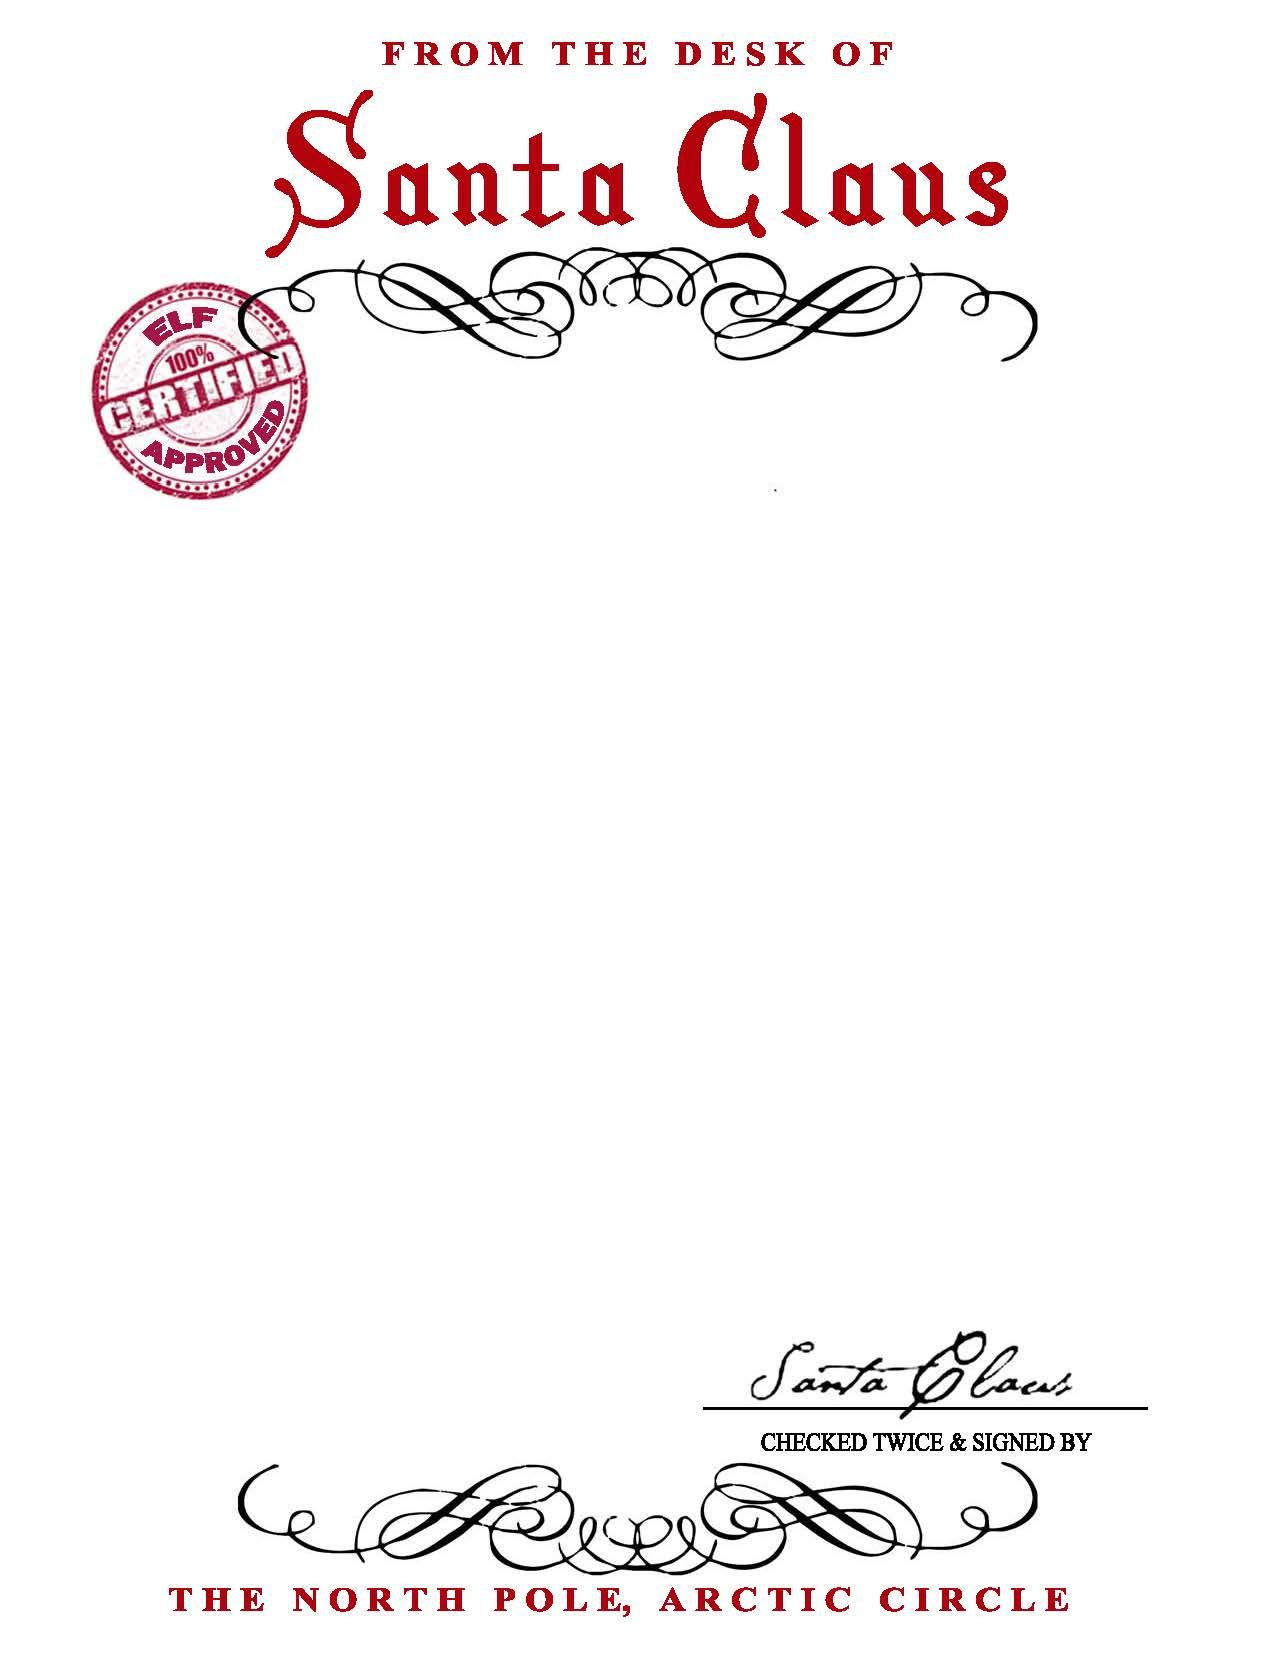 Santa claus letterhead will bring lots of joy to children santa claus letterhead will bring lots of joy to children spiritdancerdesigns Images